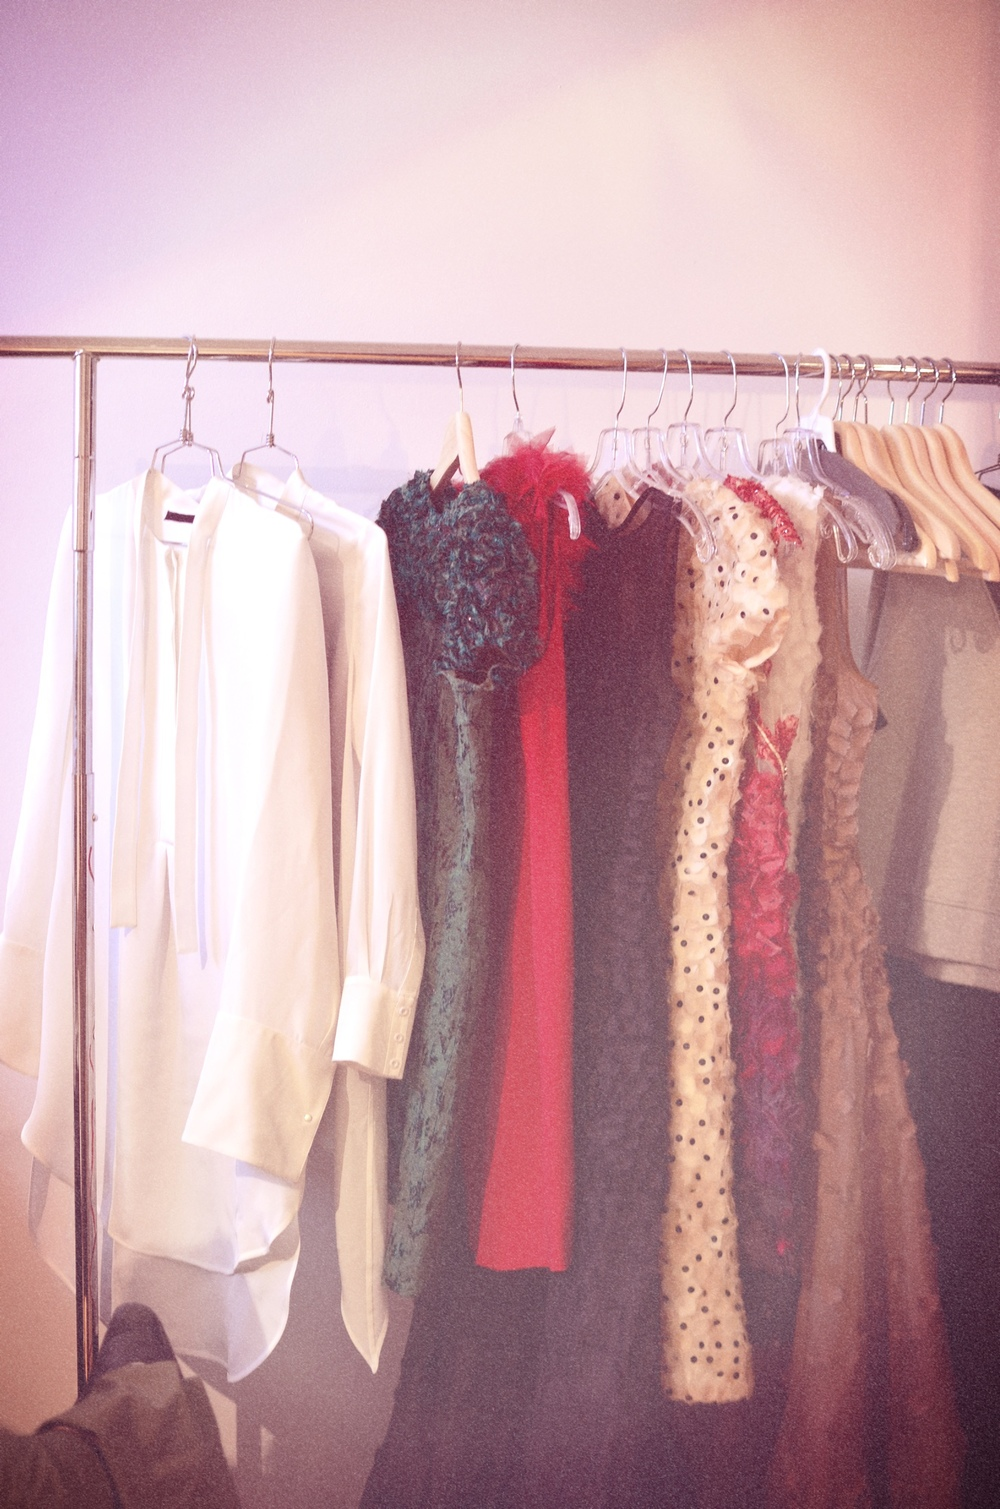 Photoshoot - clothes rack.jpg